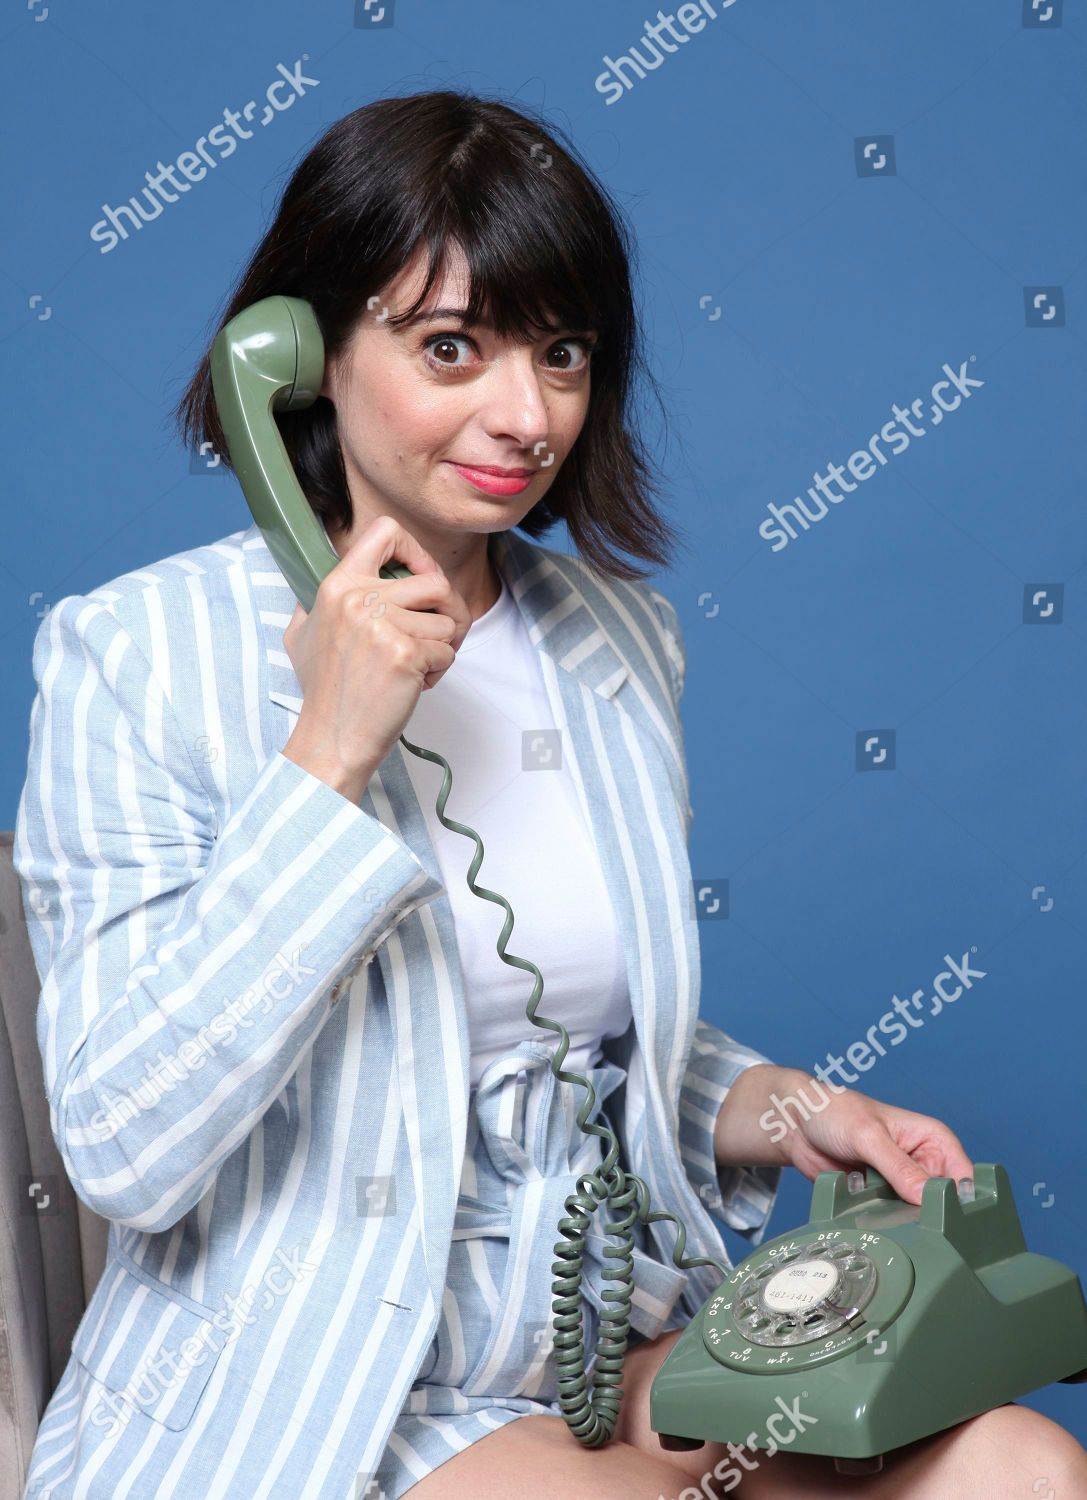 Kate Micucci poses portrait promote animated television